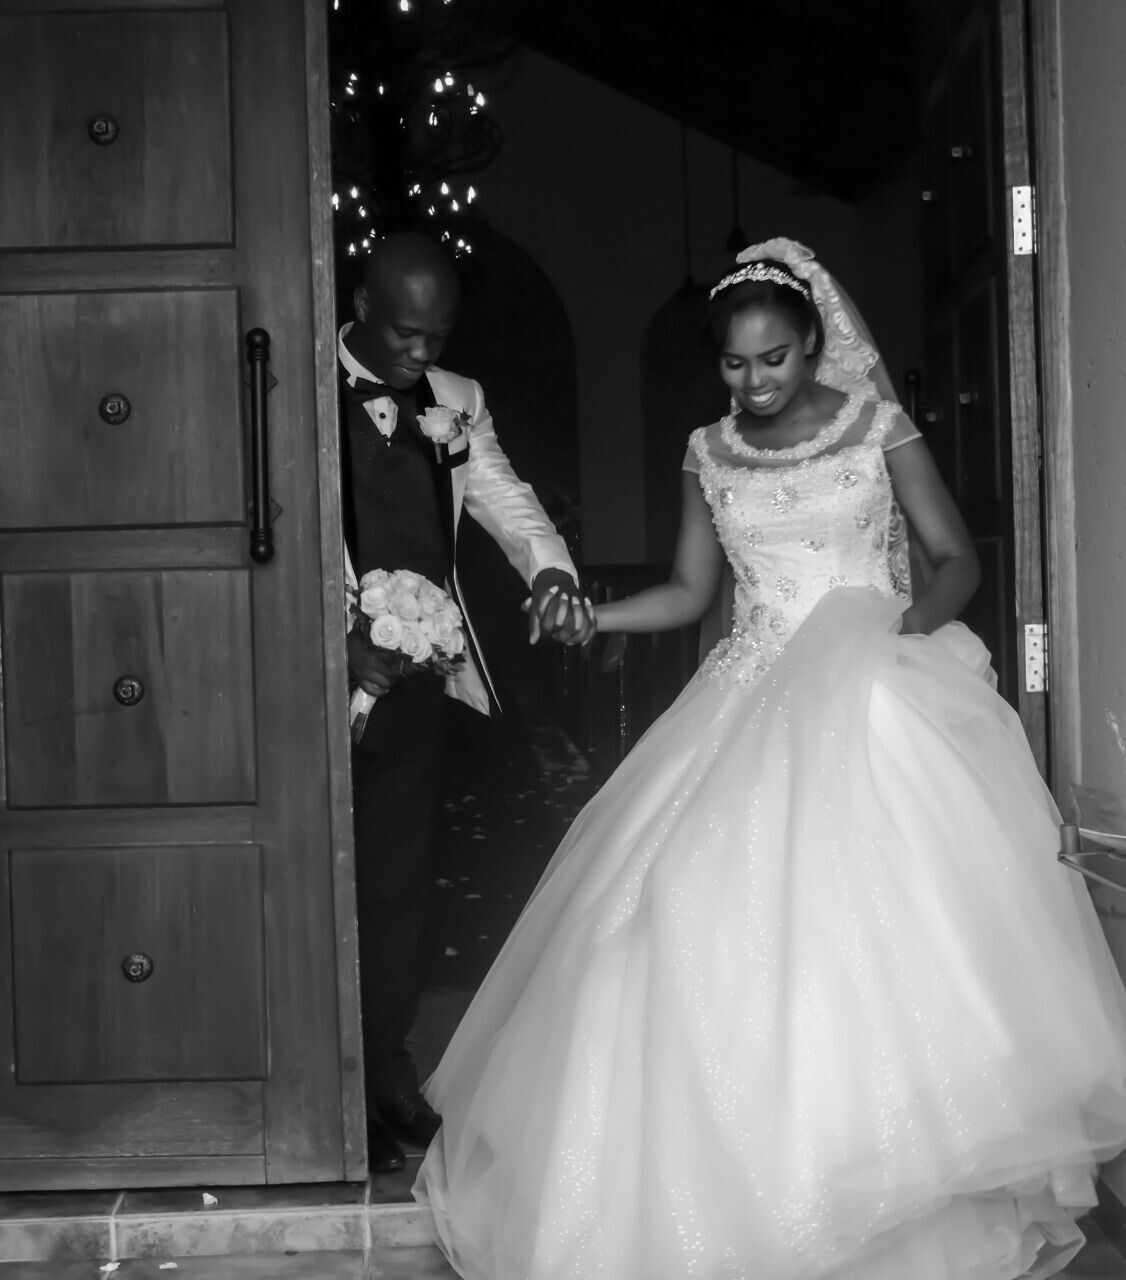 Trying on wedding dresses for the first time  For the first time ever meet Mr and Mrs Mahlangu bride wedding